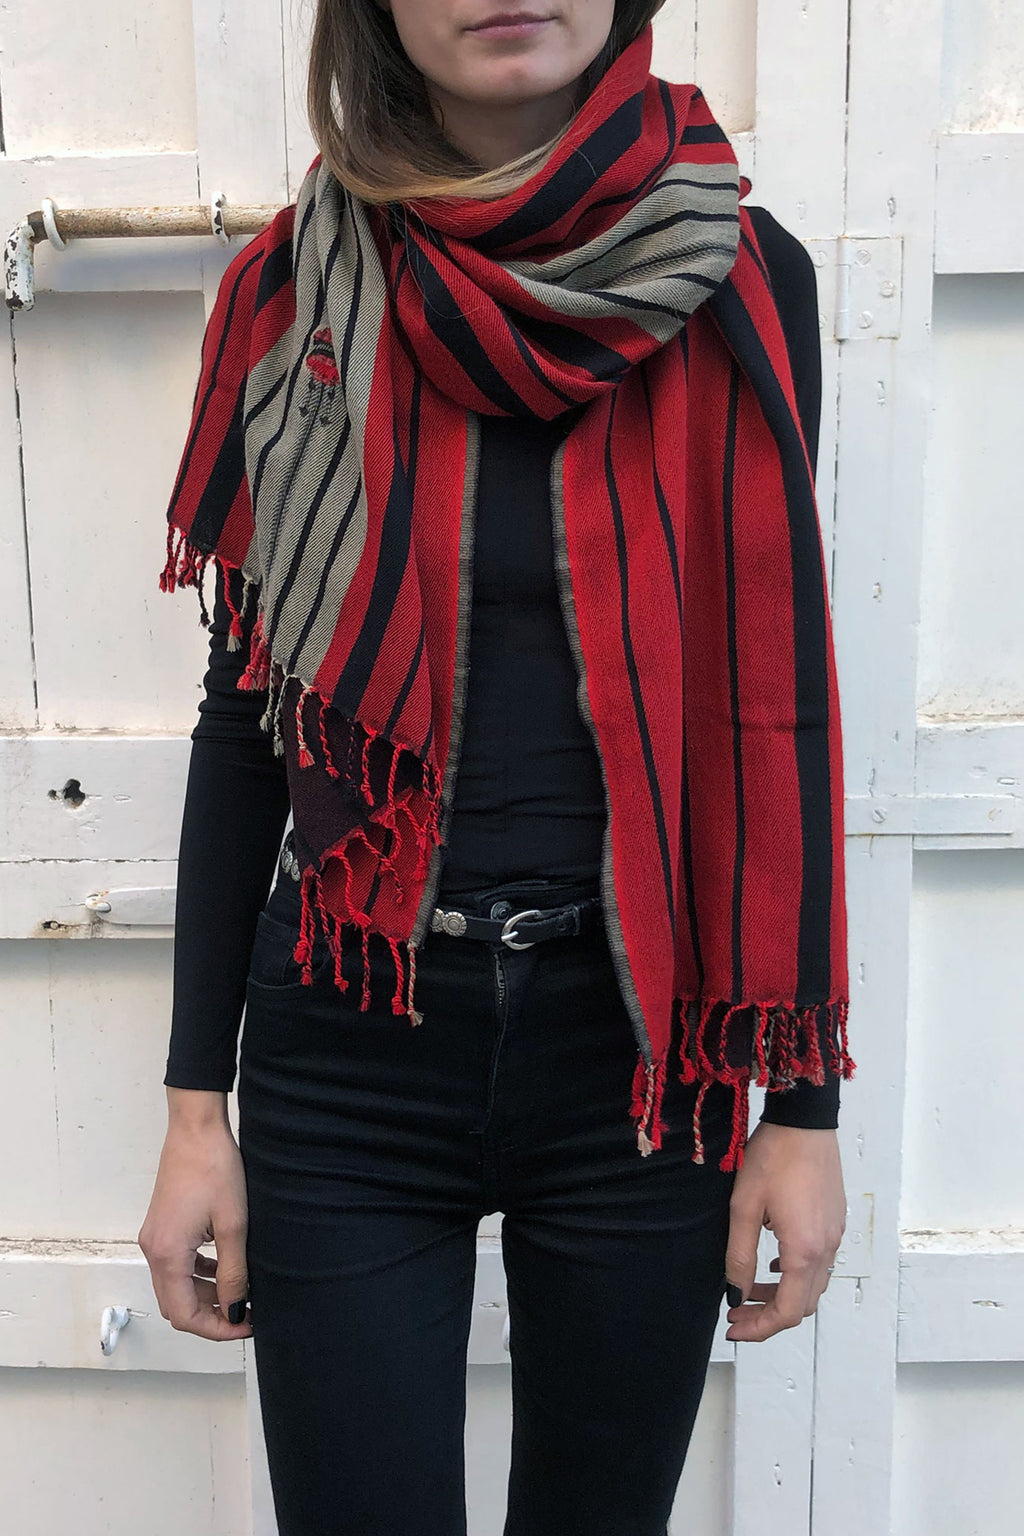 Red and Black Wool Shawl with Tribal Pattern